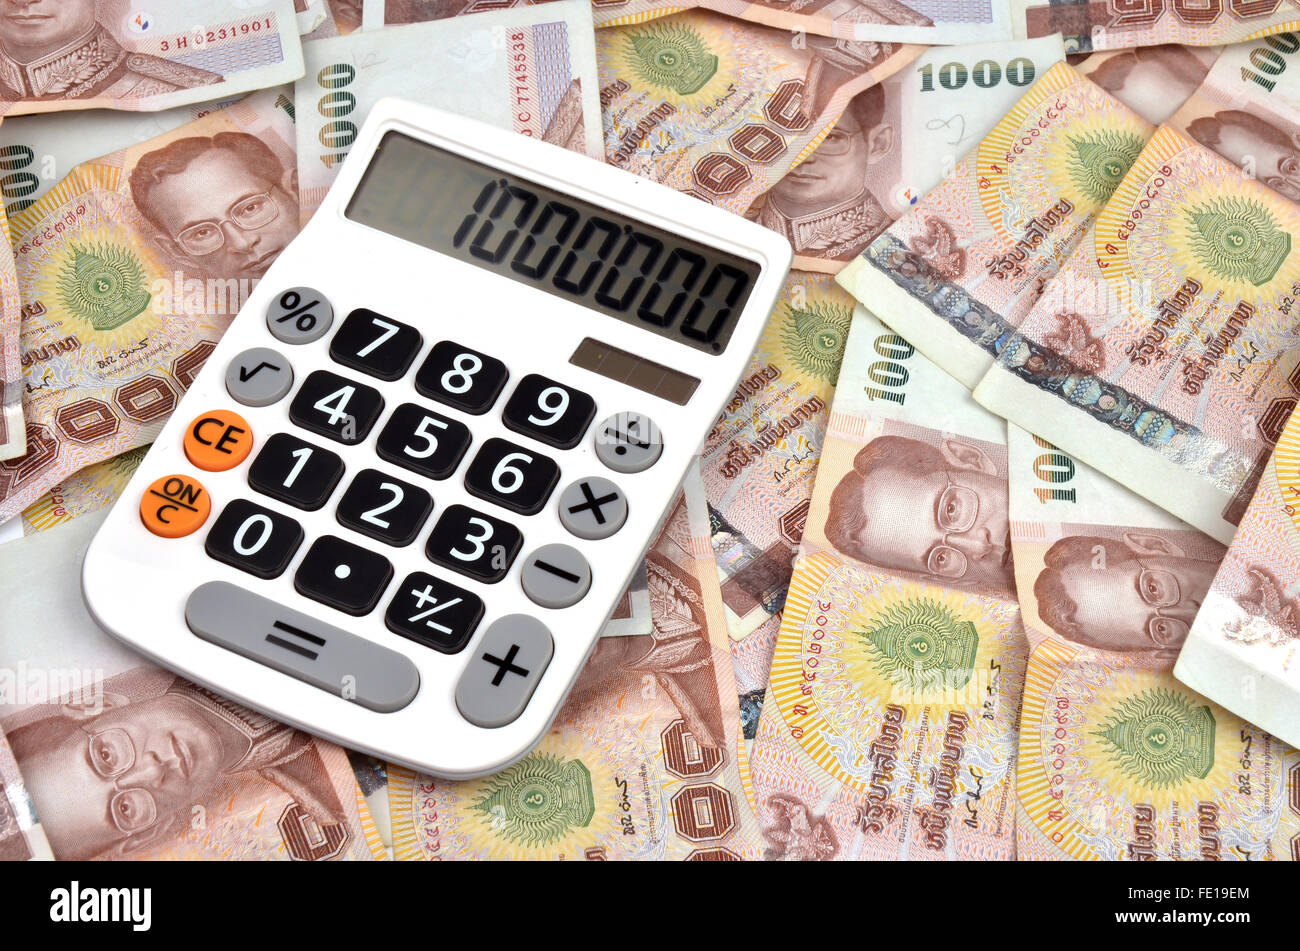 close up of 1000 baht banknotes and calculator - Stock Image